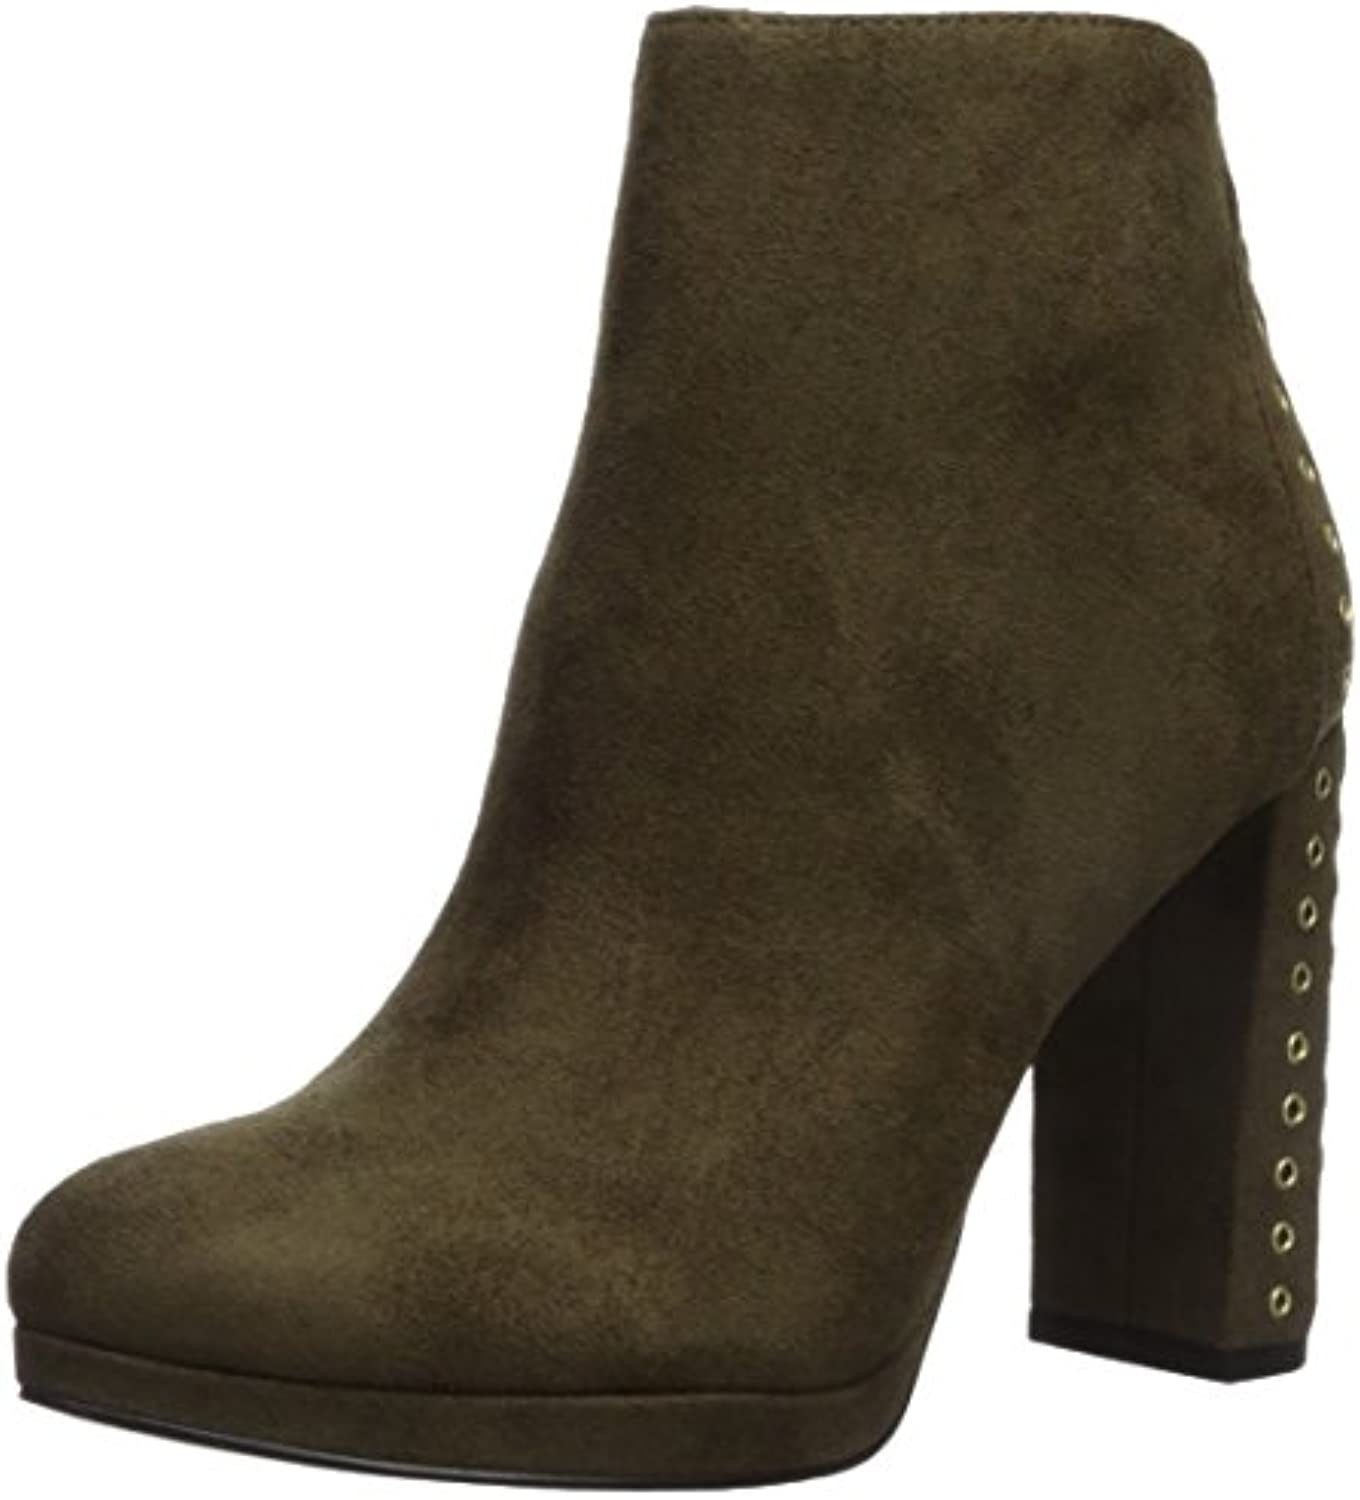 61ffaac9923f ... Boot B074VC5P8P Parent 1ada66. Guess Women s Beverly Beverly Beverly  Ankle Boot B074VC5P8P Parent 1ada66. Mee Shoes Womens Knee-high High-Heel  Western ...